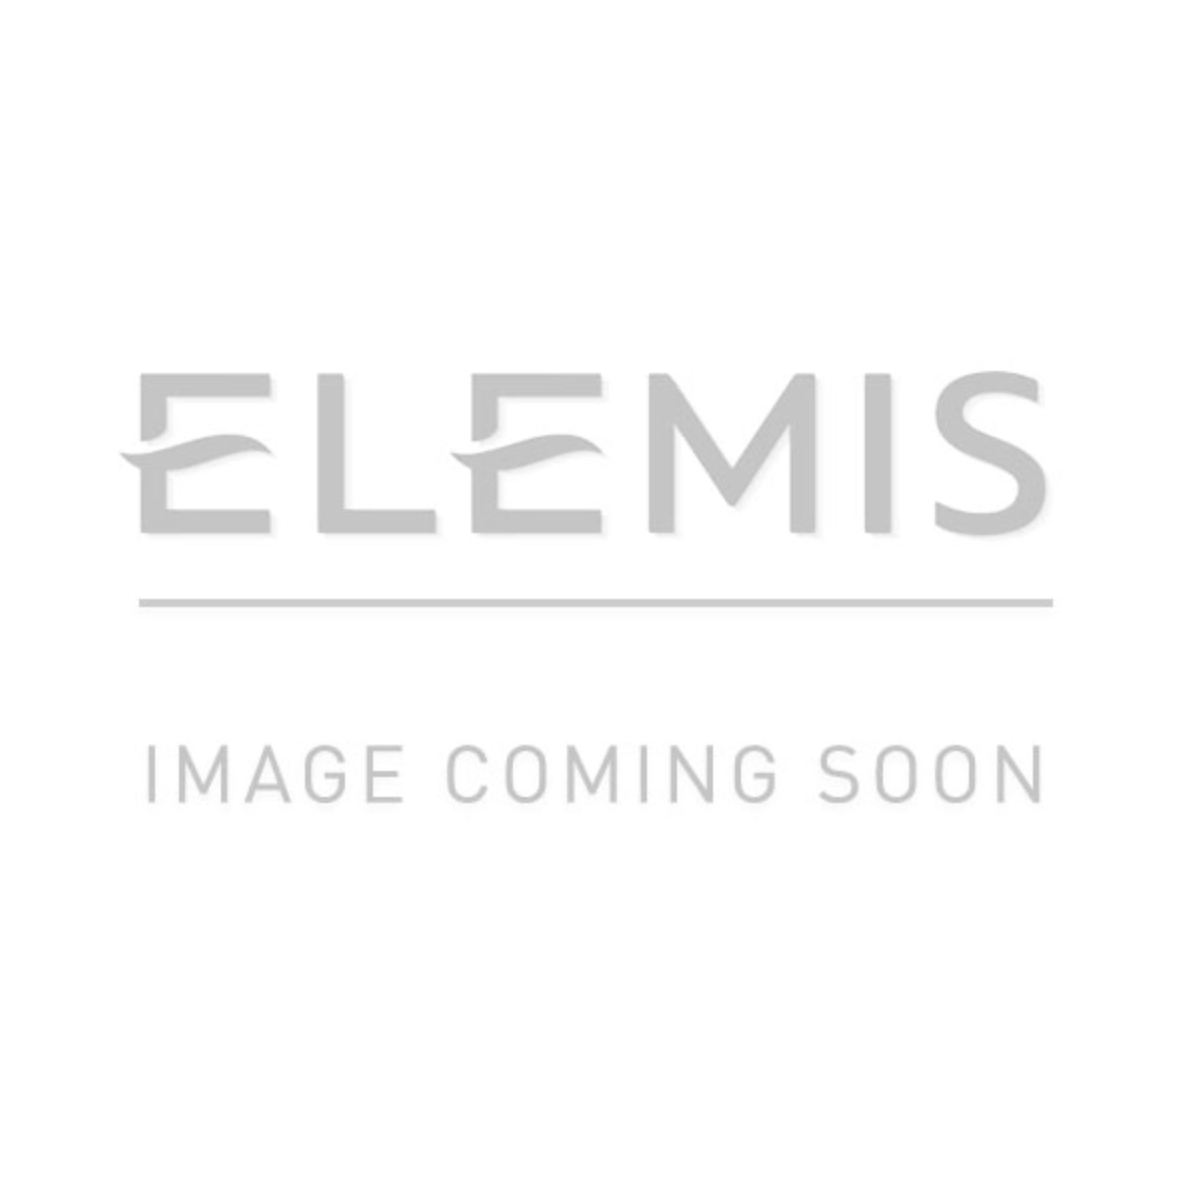 elemis life elixirs calm perfume oil with clary sage